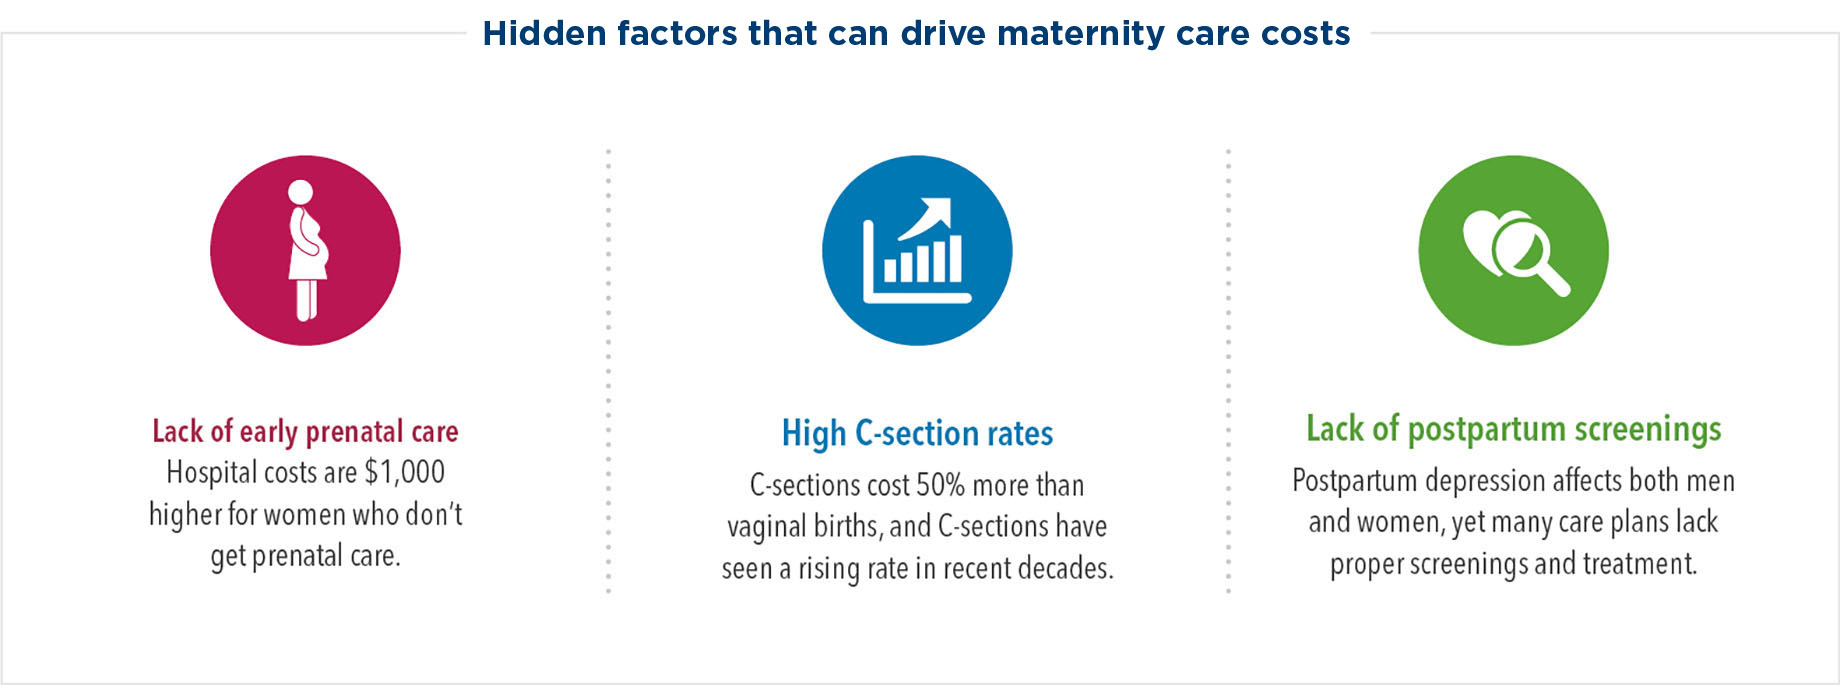 Hidden factors that can drive maternity care costs include lack of prenatal care, high C-section rates, and lack of postpartum screenings. Hospital costs are $1,000 higher for women who don't get prenatal care. C-sections cost 50% more than vaginal births, and C-sections have seen a rising rate in recent decades. Postpartum depression affects both men and women, yet many care plans lack proper screenings and treatment.